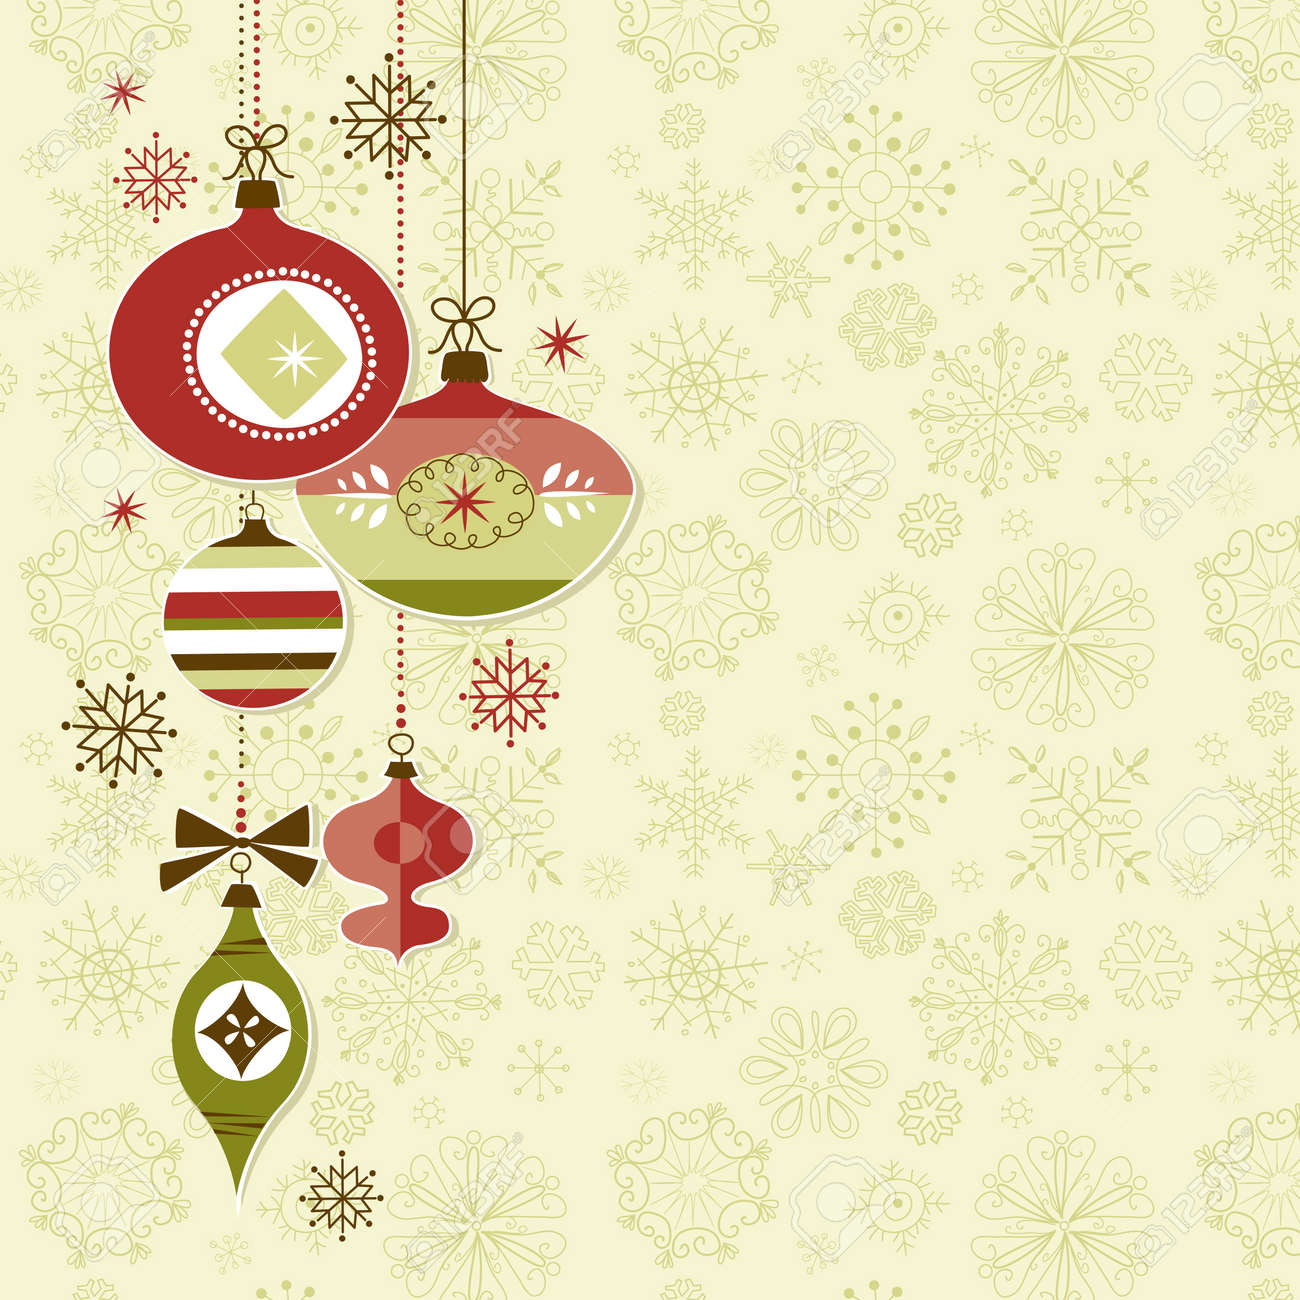 Retro Christmas Ornaments Royalty Free Cliparts, Vectors, And ...